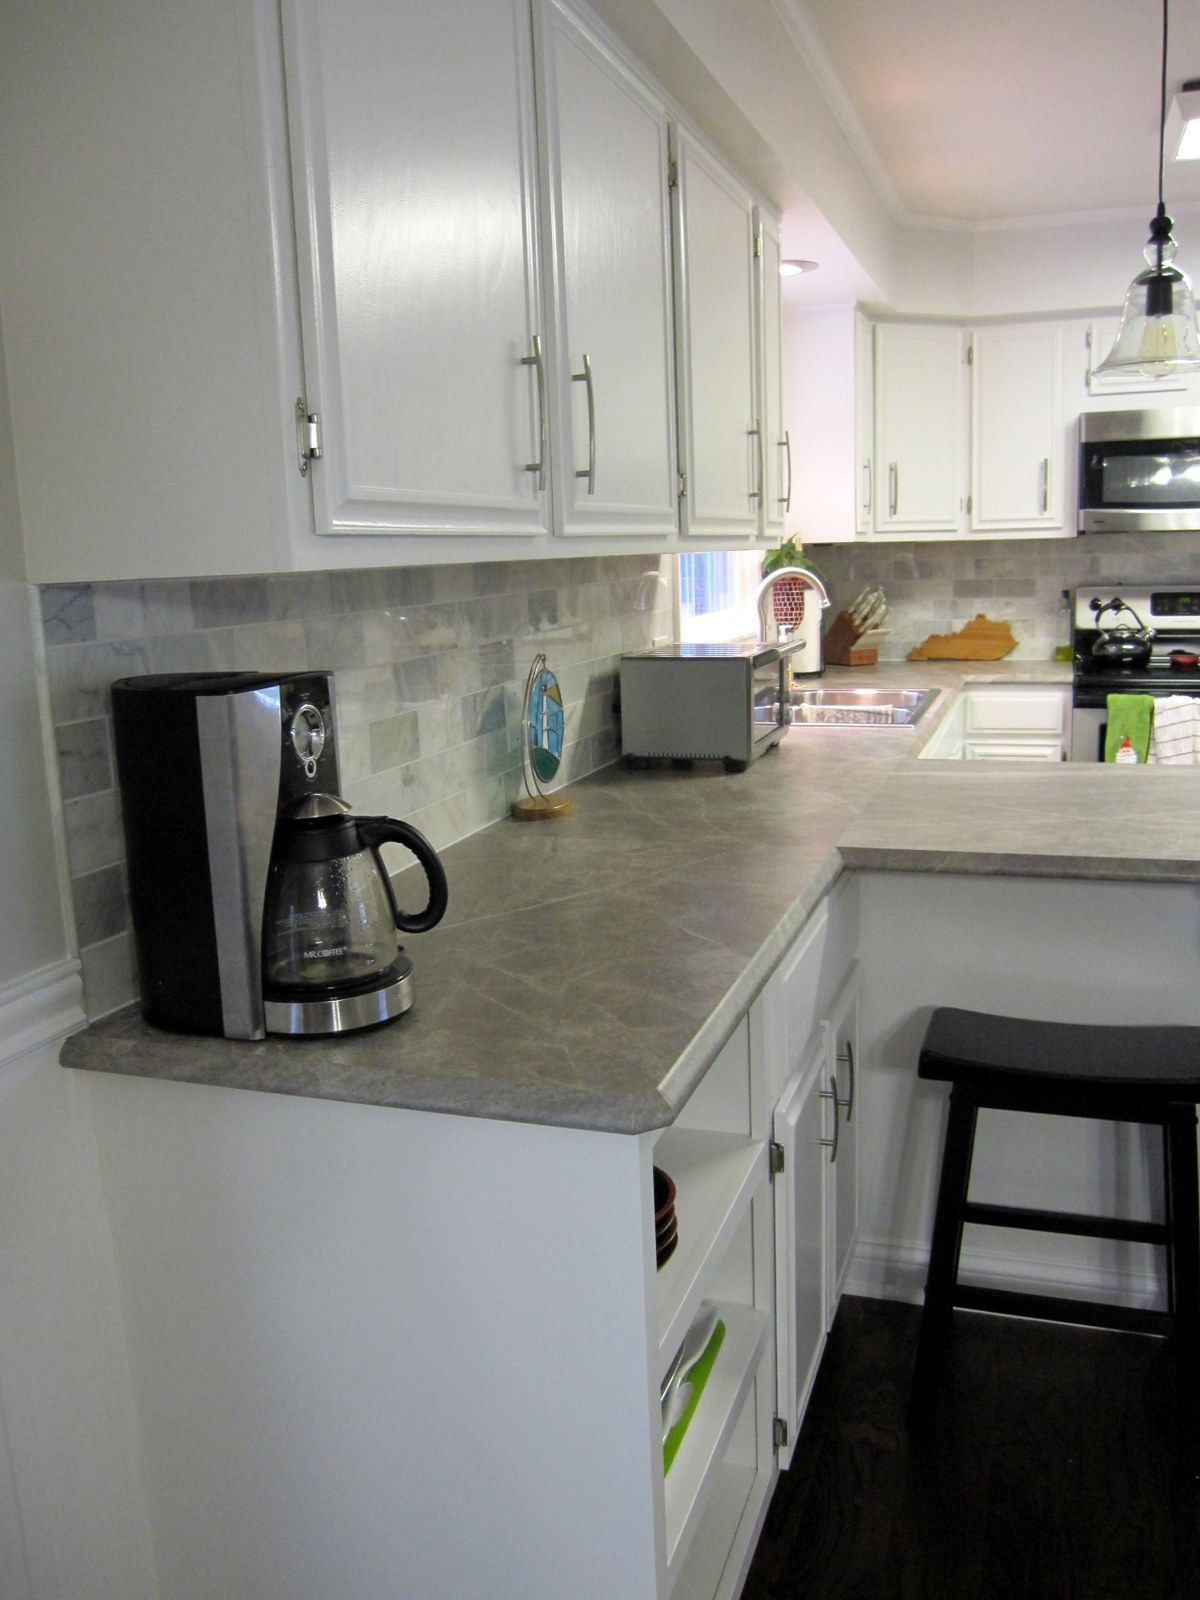 break it down now our kitchen remodel costs new place kitchen